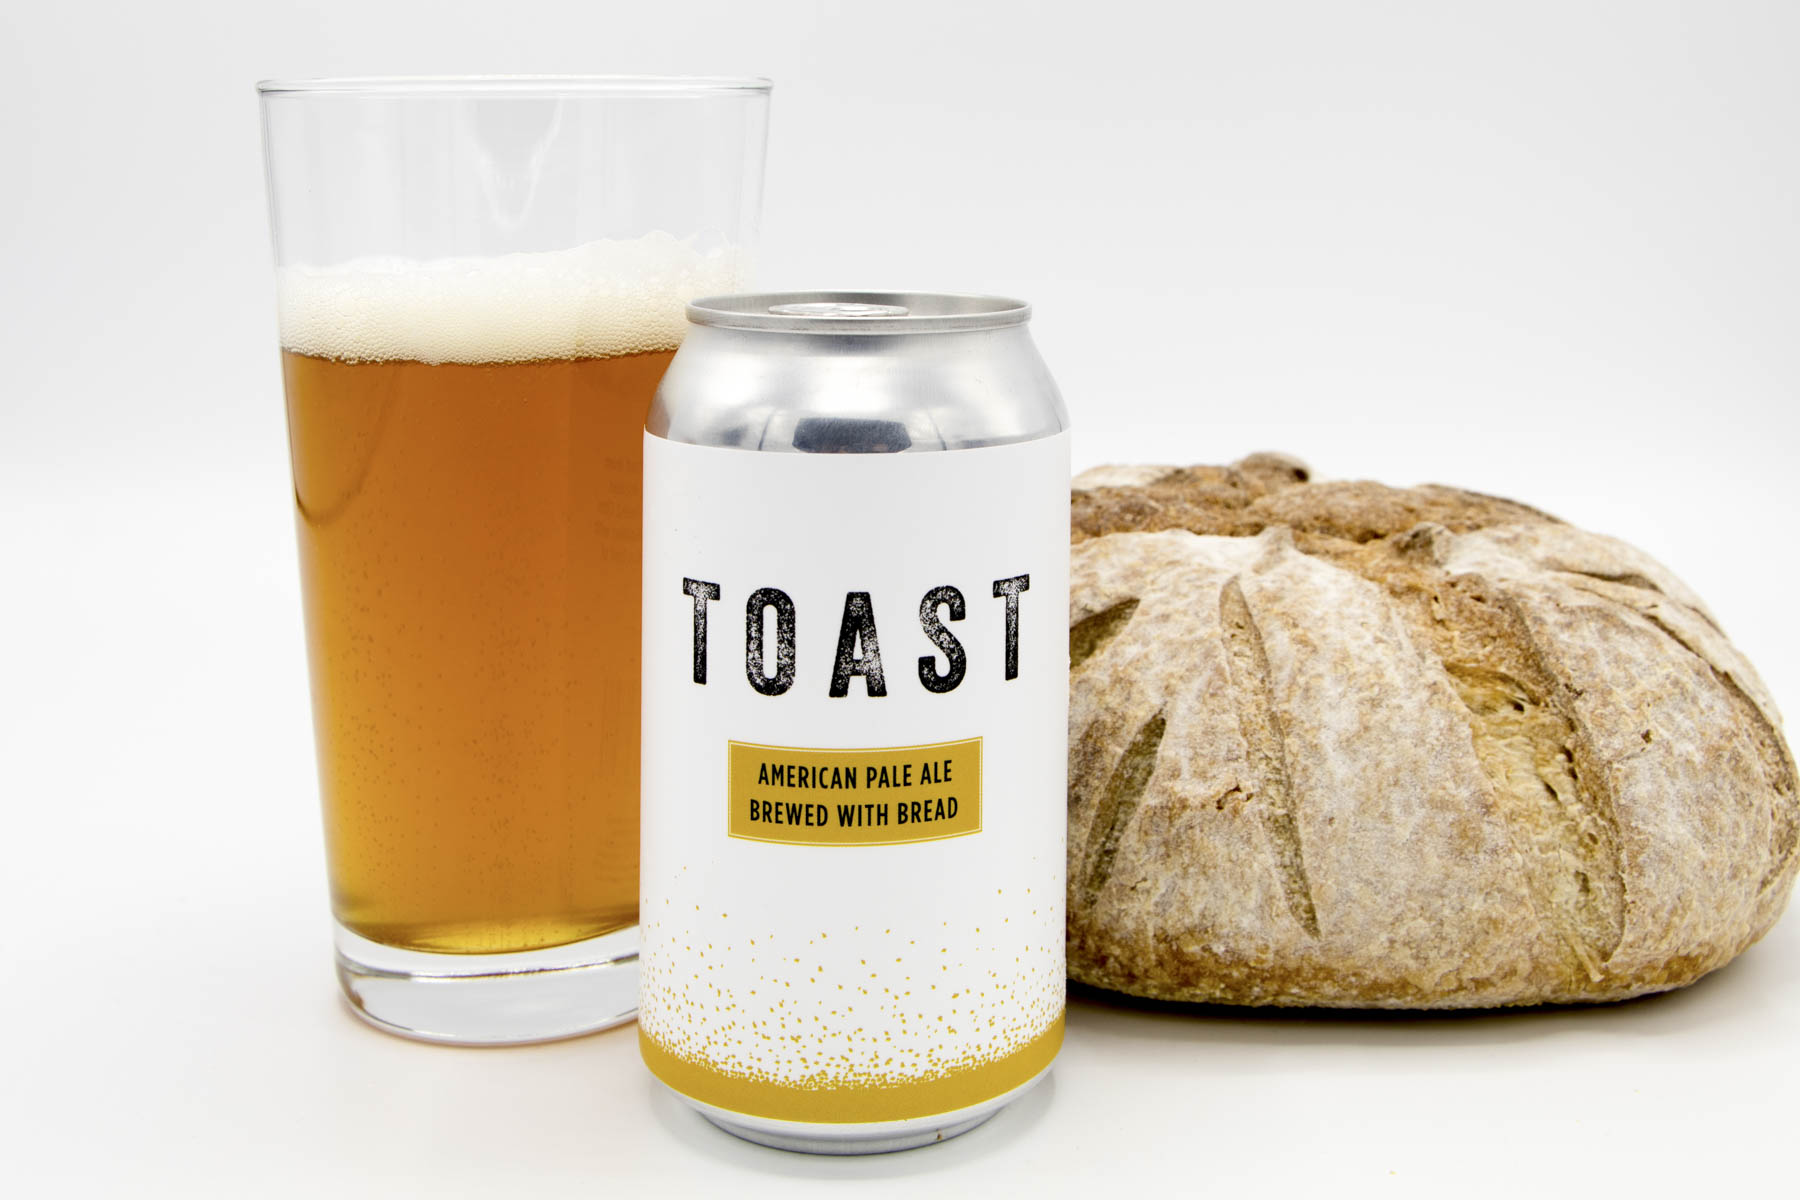 Toast Ale, a UK Beer That Turns Surplus Bread Into Heady Brews - Bloomberg